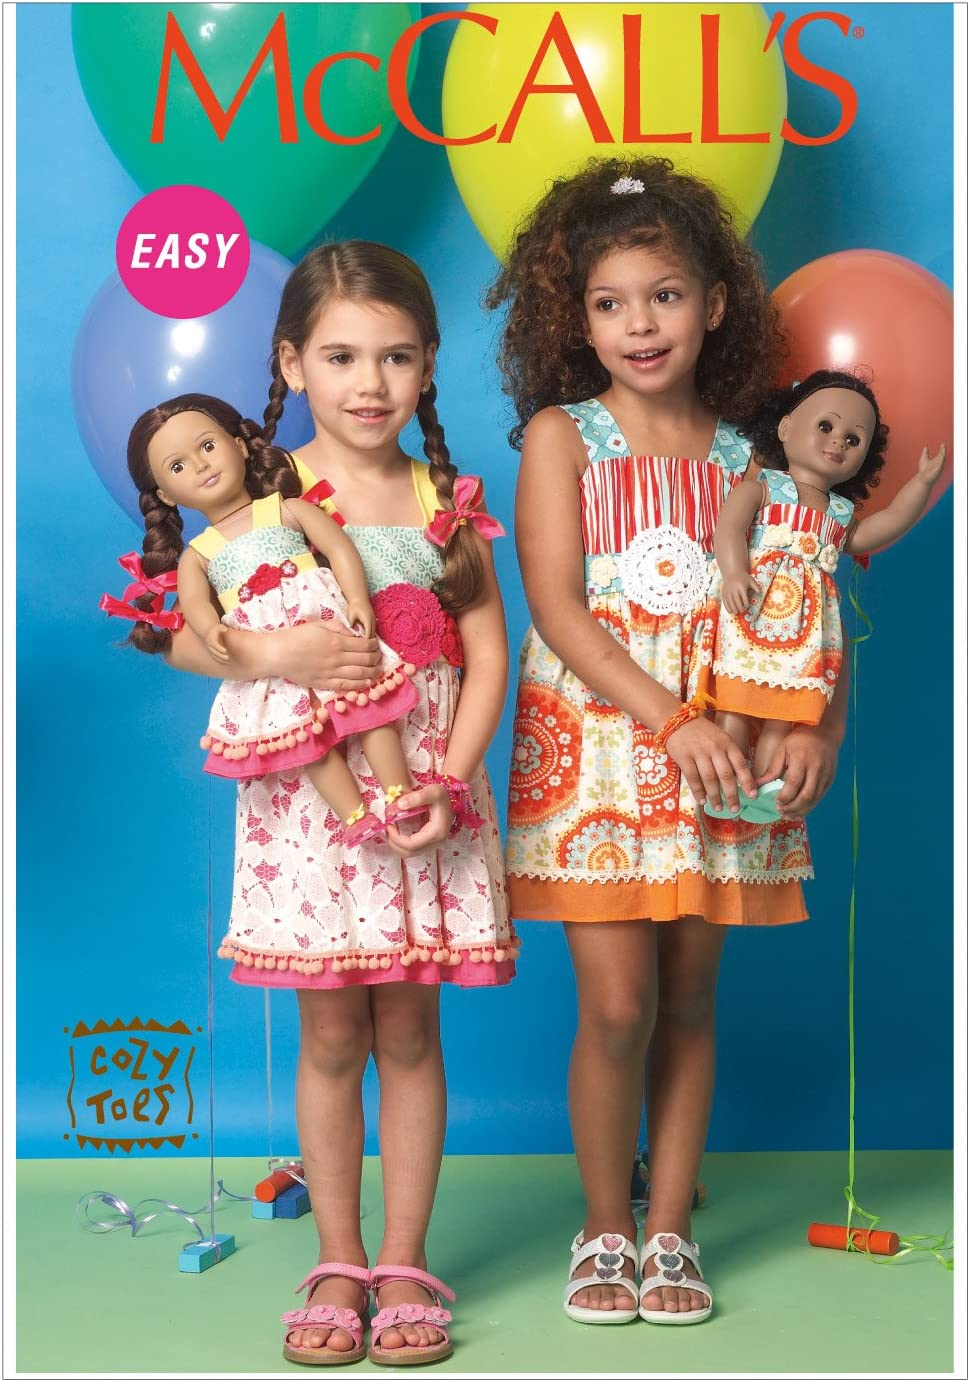 McCalls Patterns M7146 Childrens//Girls//18 Dolls Dresses Sewing Template 6-7-8 CL